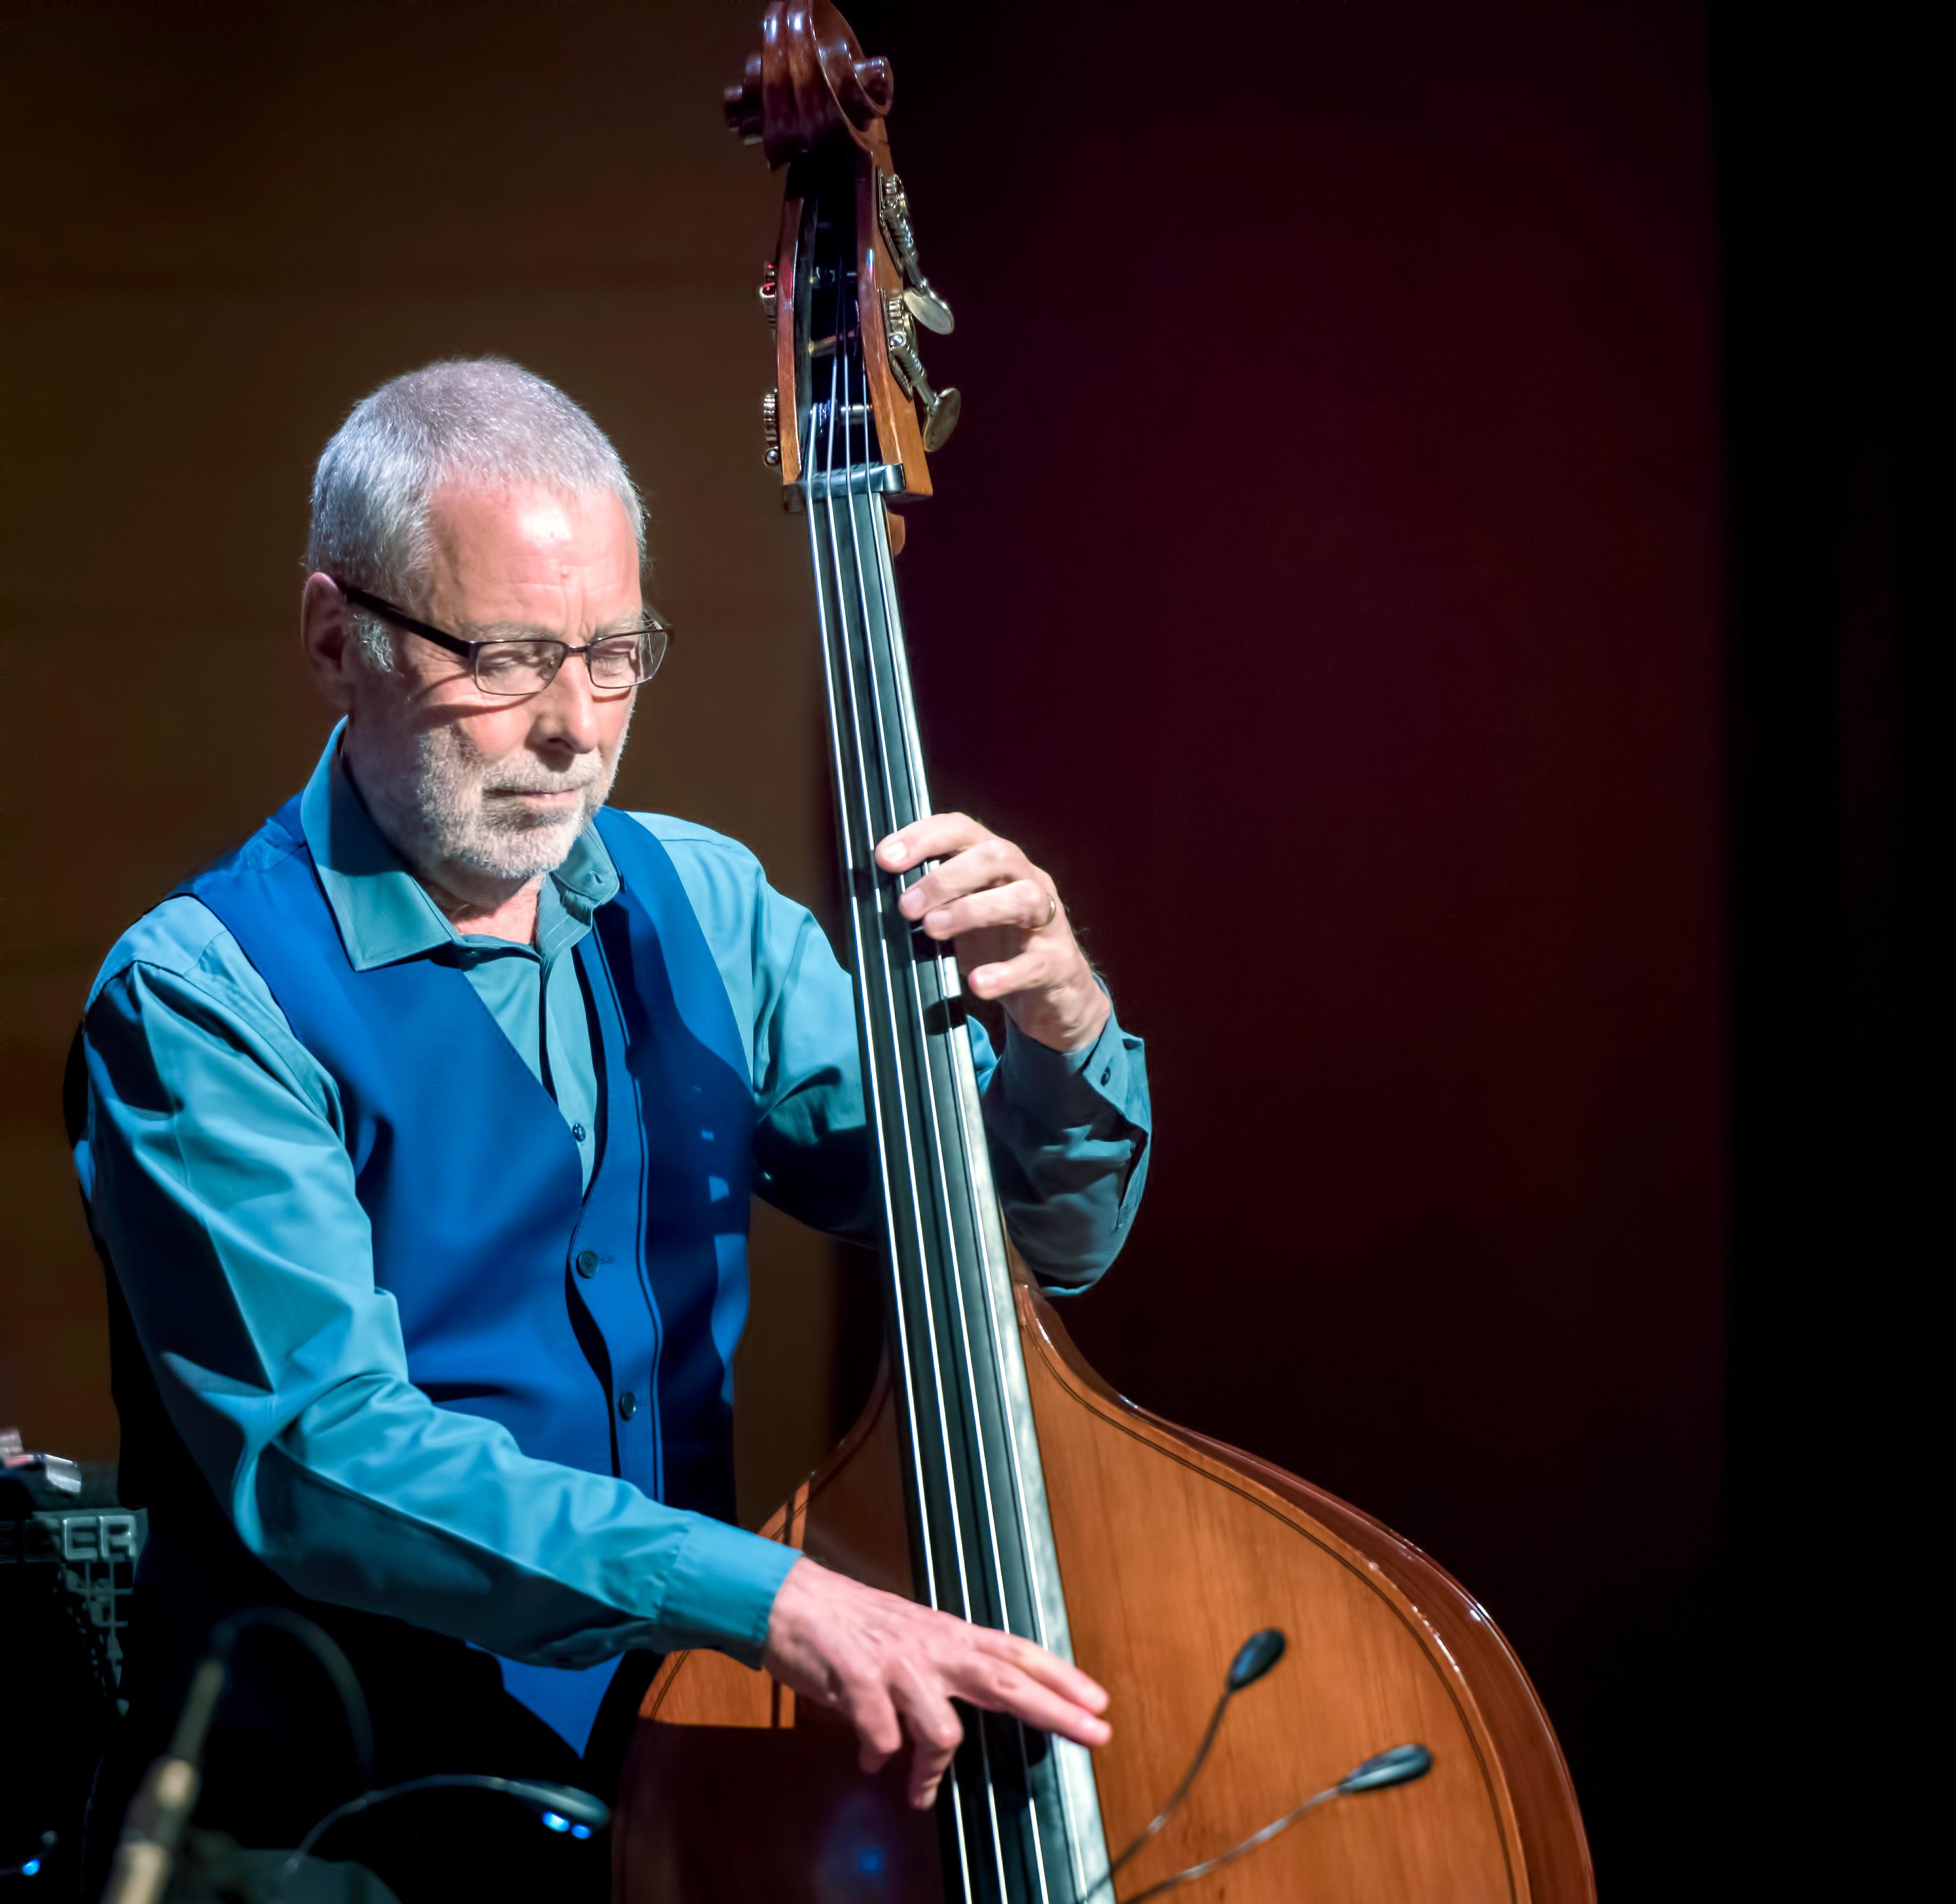 Dave Holland with Zakir Hussain and Chris Potter At The Musical Instrument Museum (MIM) In Phoenix